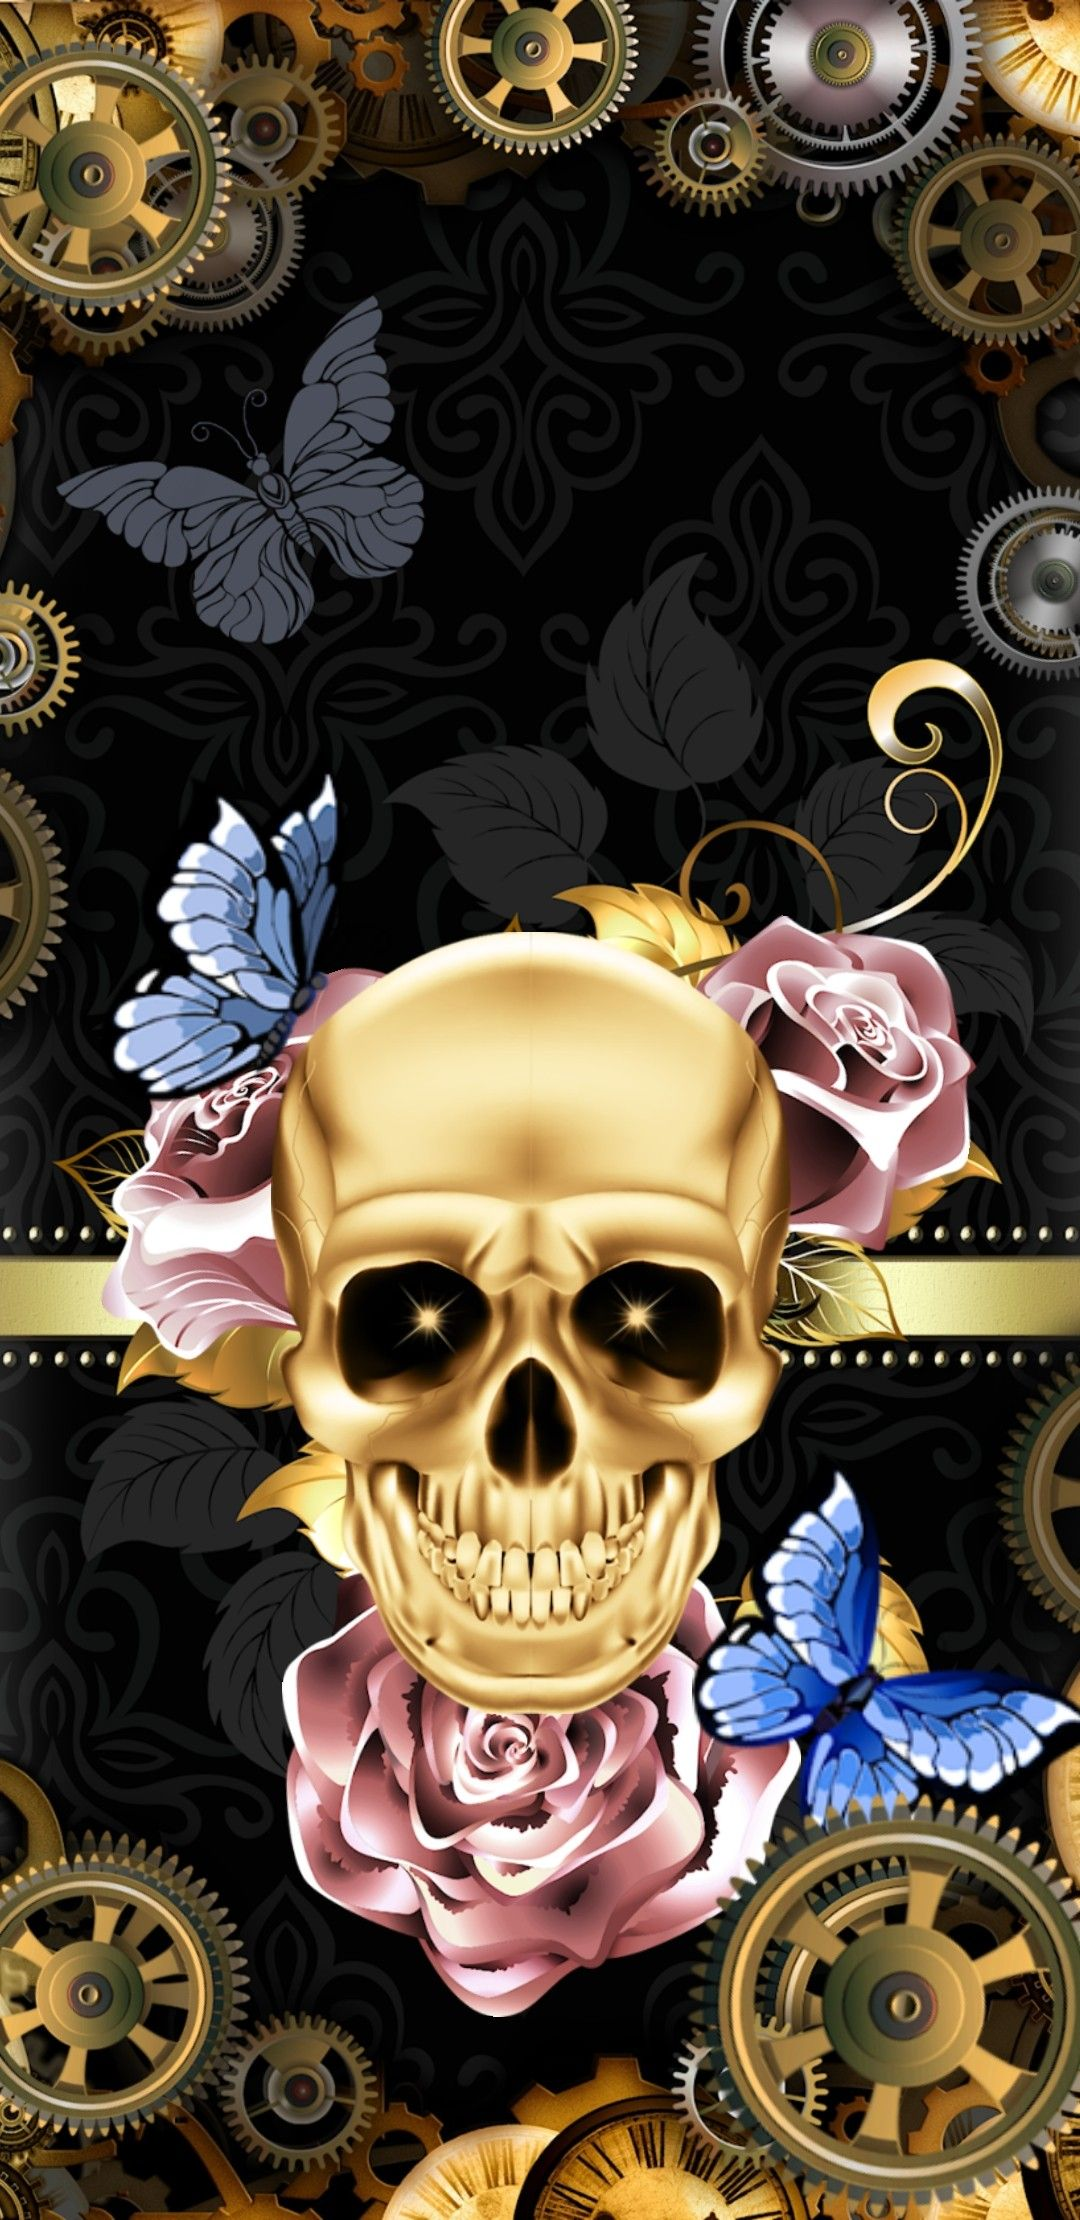 Pin By Kayla Marie Downing On Skull Skeleton Wallpaper Skull Wallpaper Skull Art Sugar Skull Art